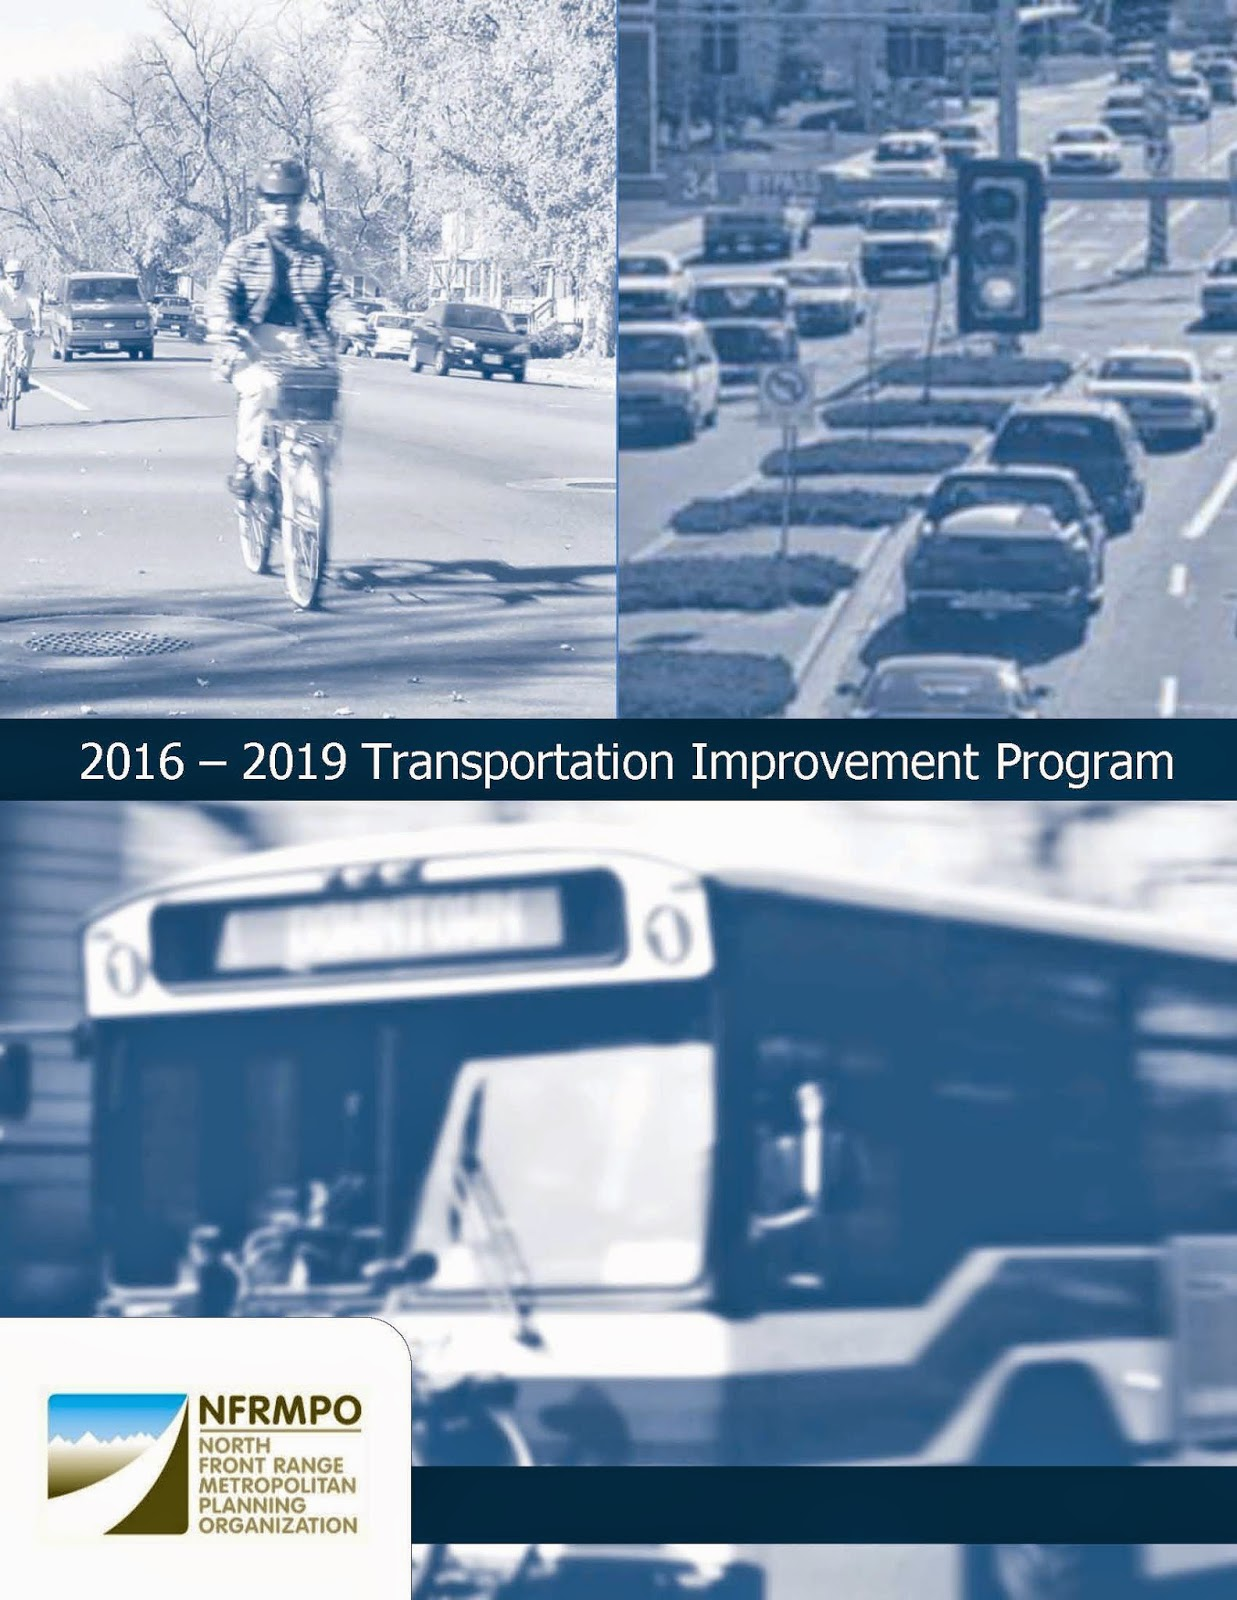 http://nfrmpo.org/ResourcesDocuments/TransportationImprovement.aspx